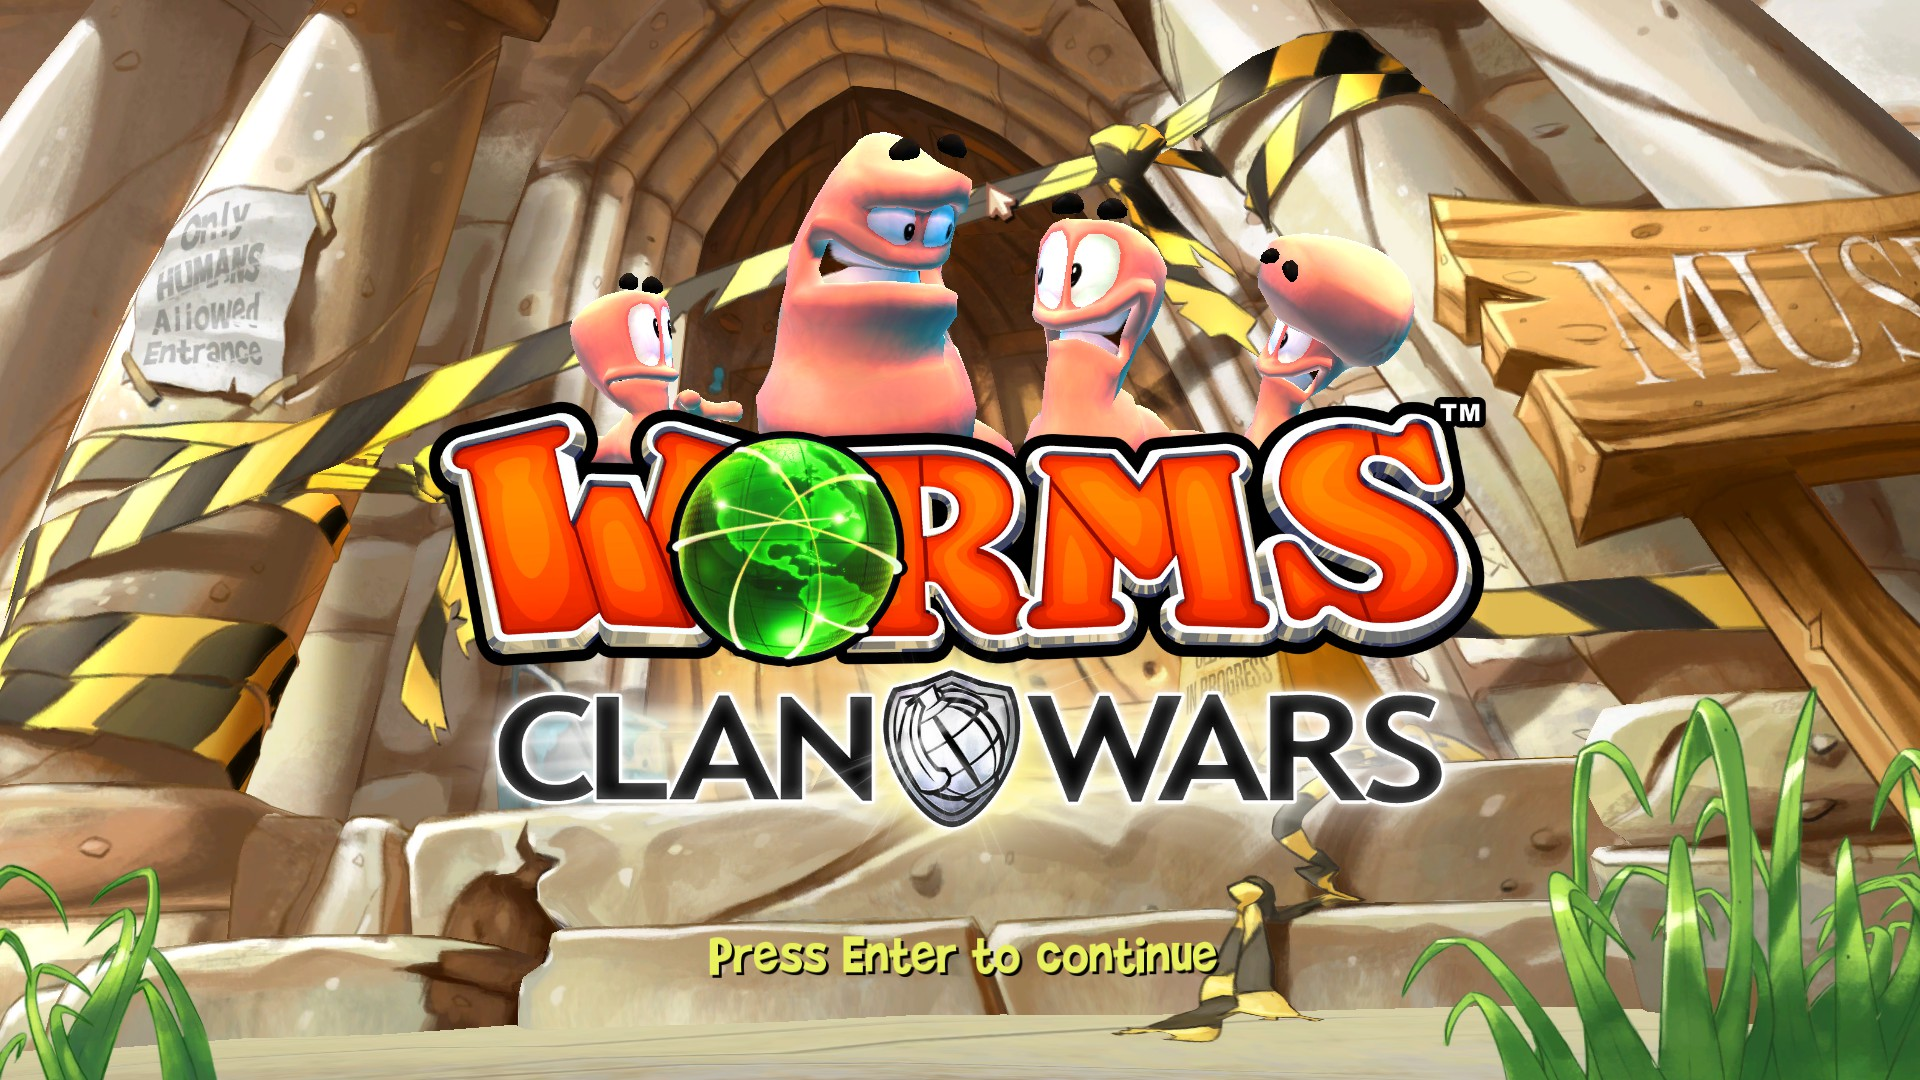 Worms Clan Wars title screen